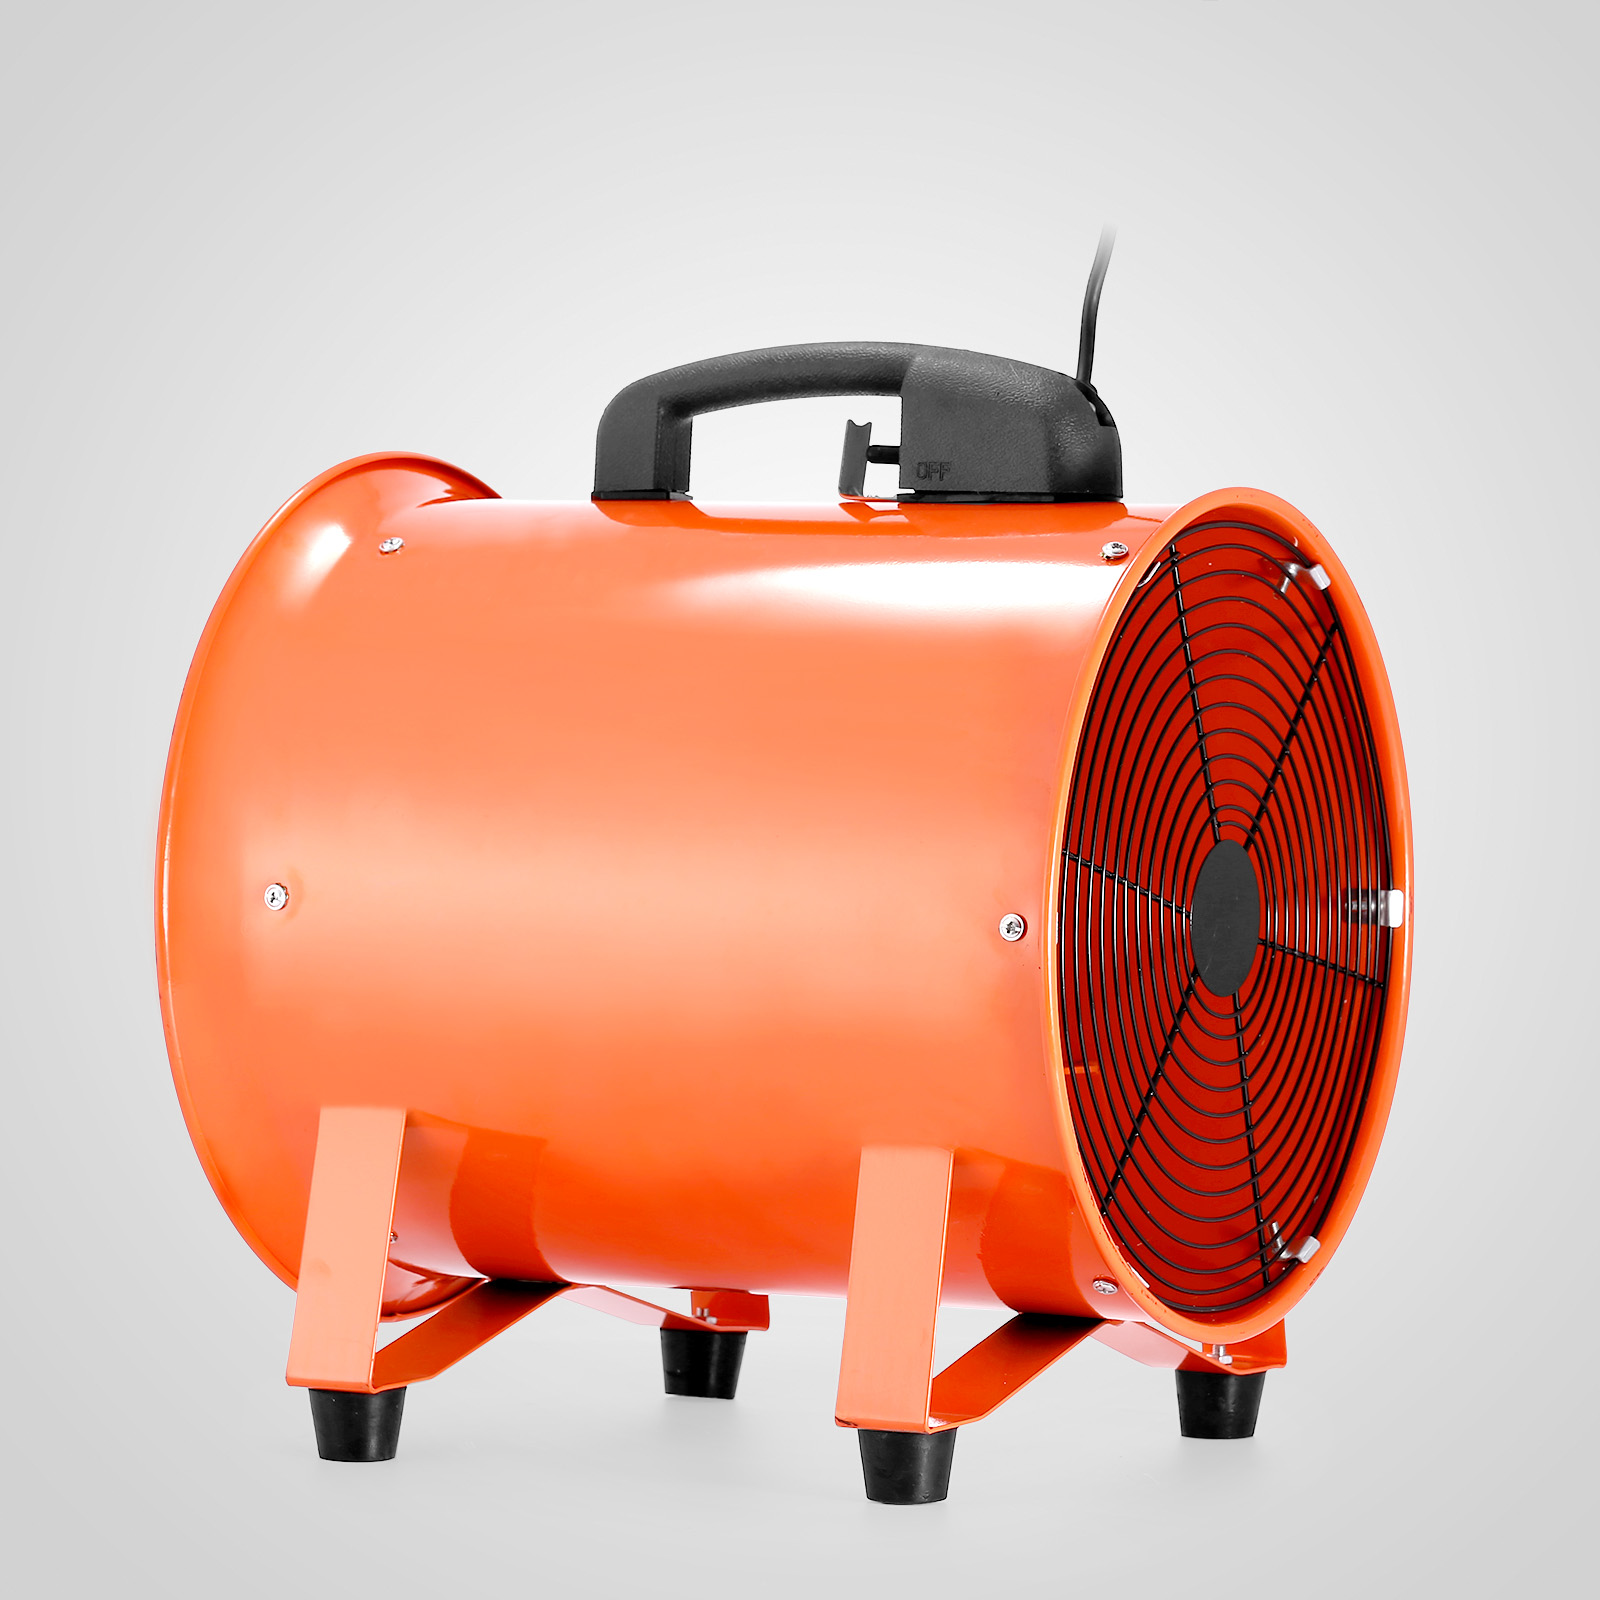 Small Industrial Fans And Blowers : Mm industrial fan ventilator fume extractor blower